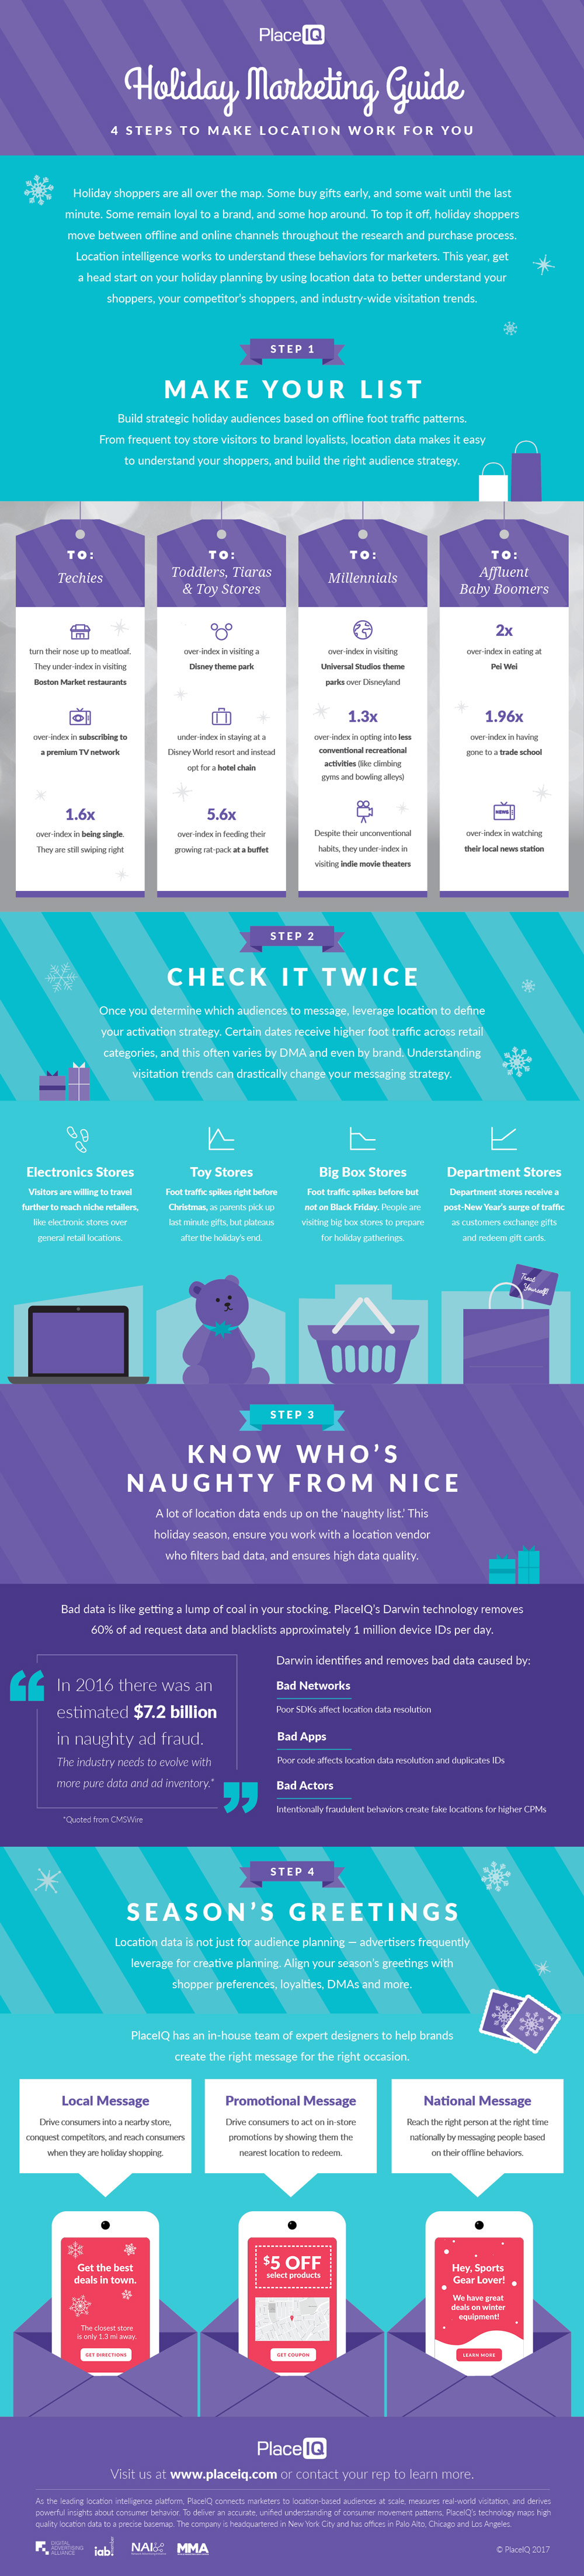 INFOGRAPHIC: Holiday Marketing Guide - 4 steps to make location work for you